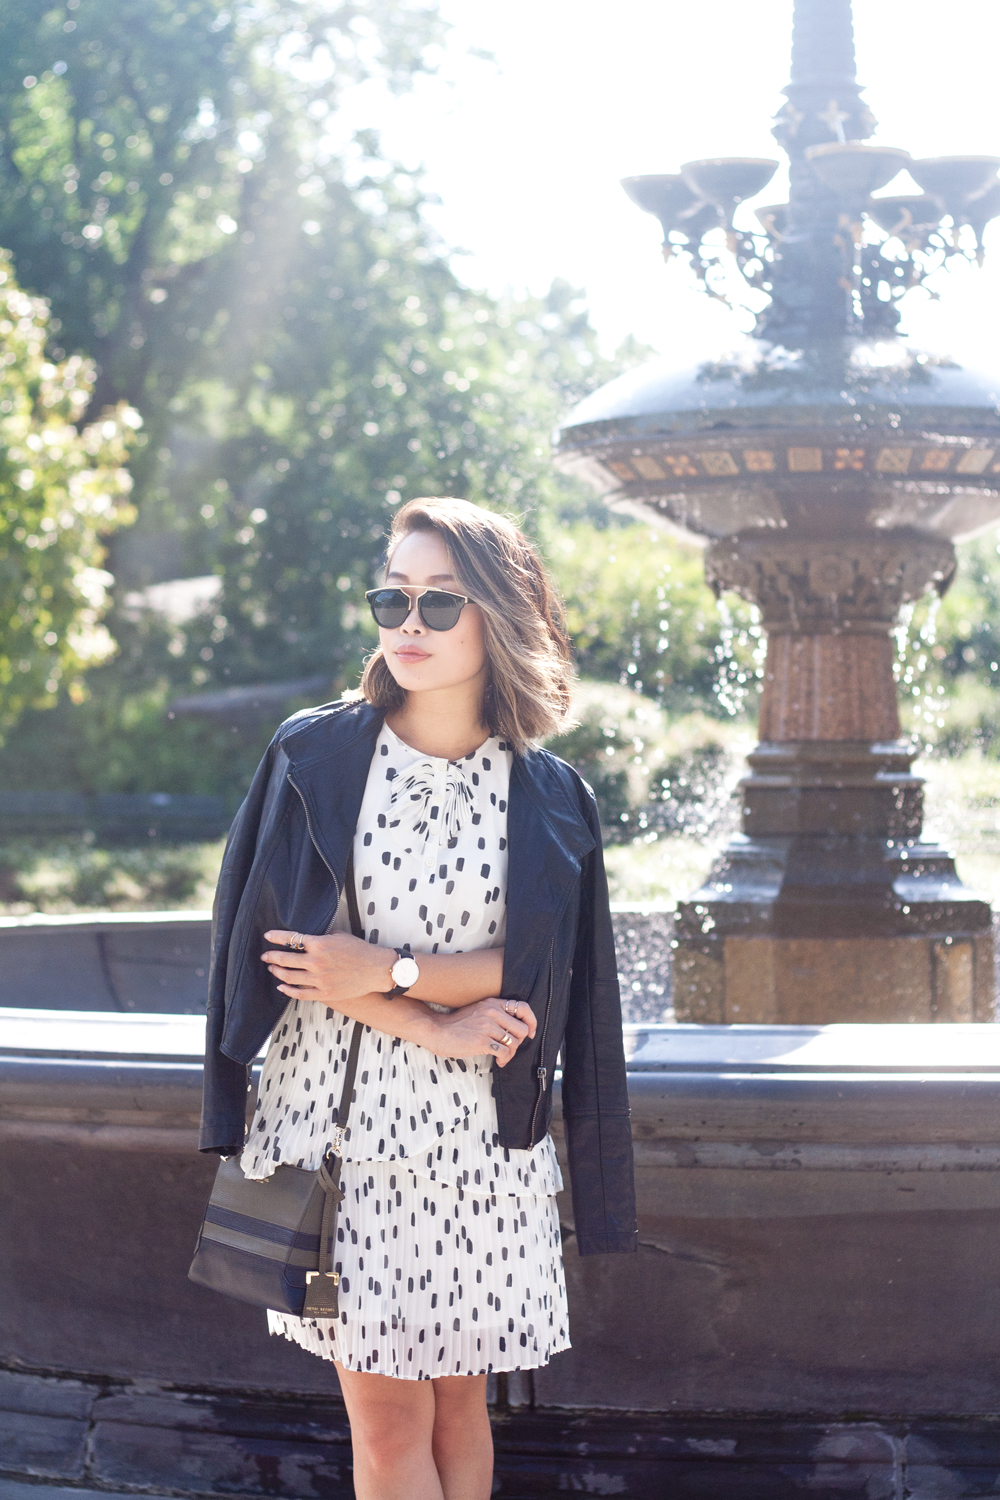 07nyc-centralpark-fountain-dots-leather-travel-fashion-style